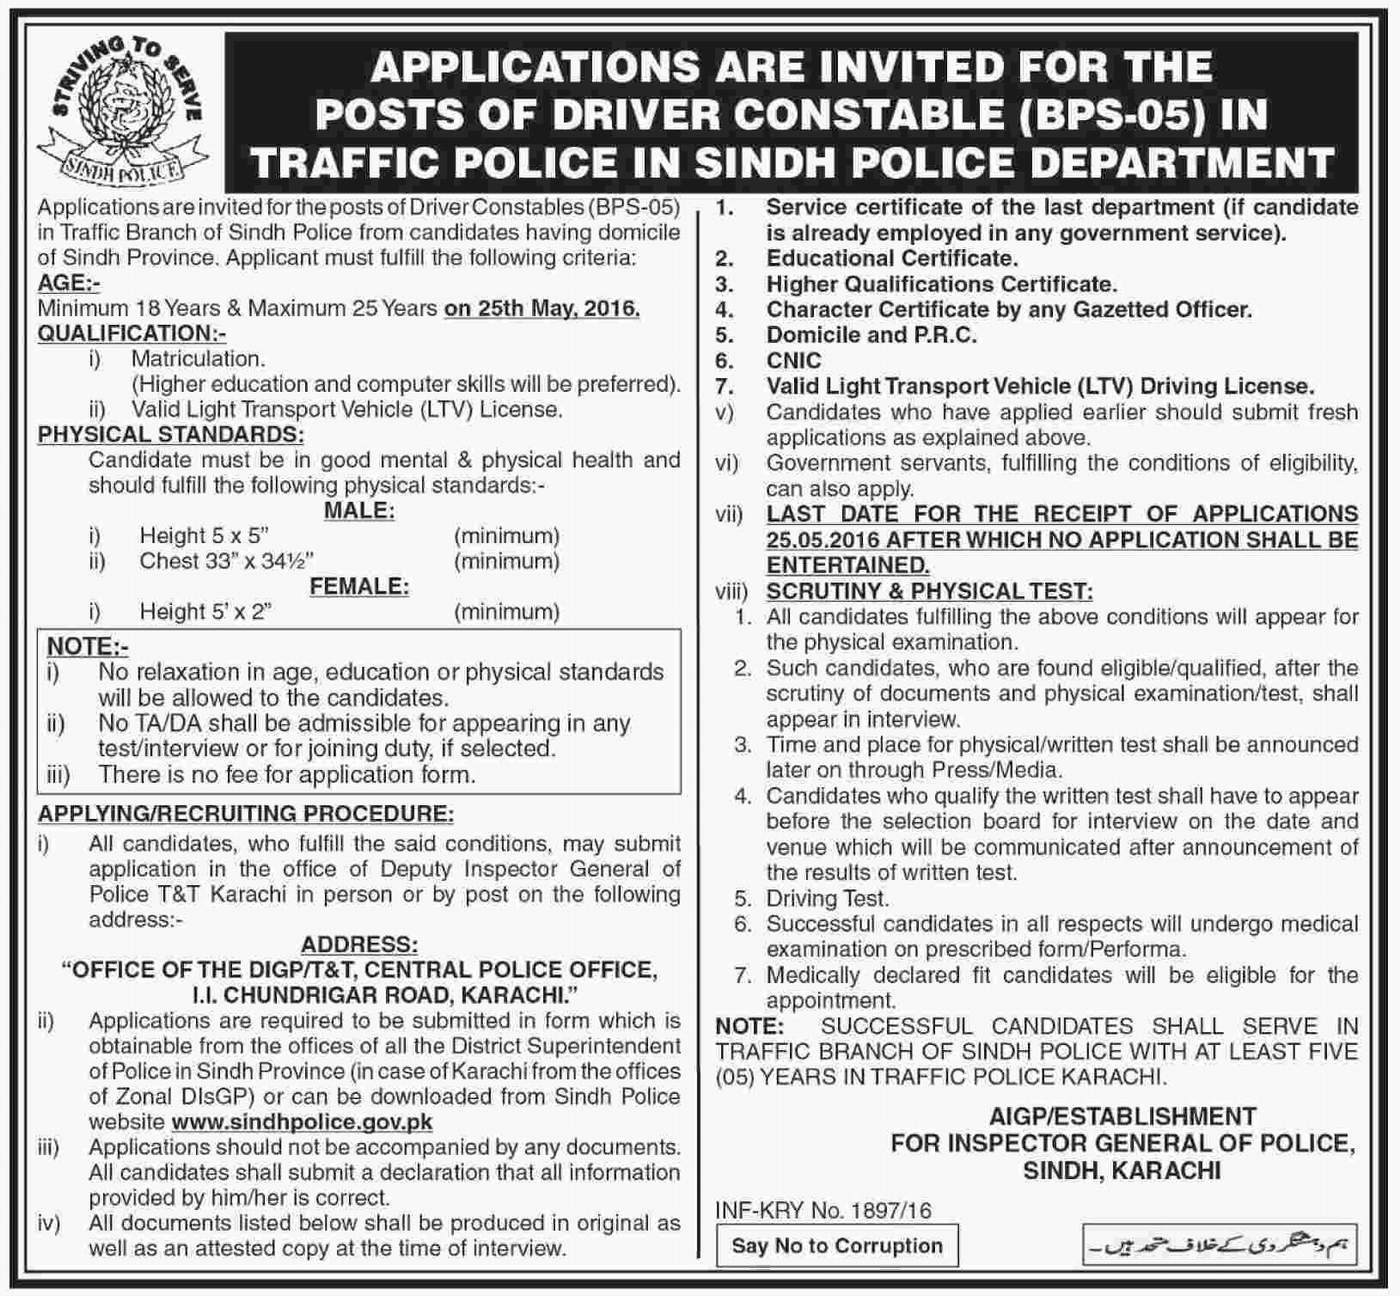 Traffic Police Department Government of Sindh Jobs